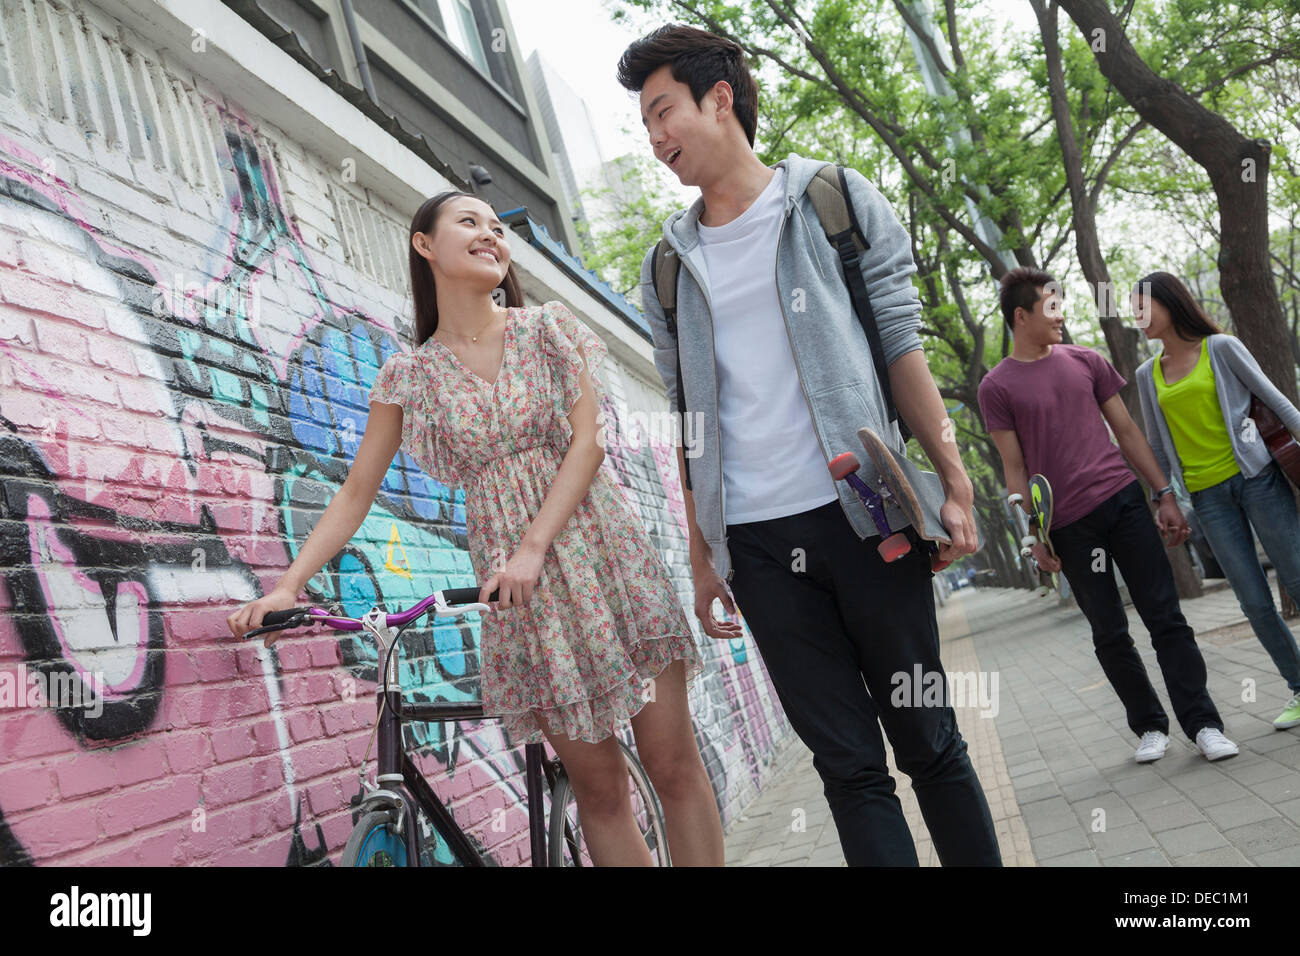 Two young couples walking down the street by a wall with graffiti, smiling and flirting with each other Stock Photo